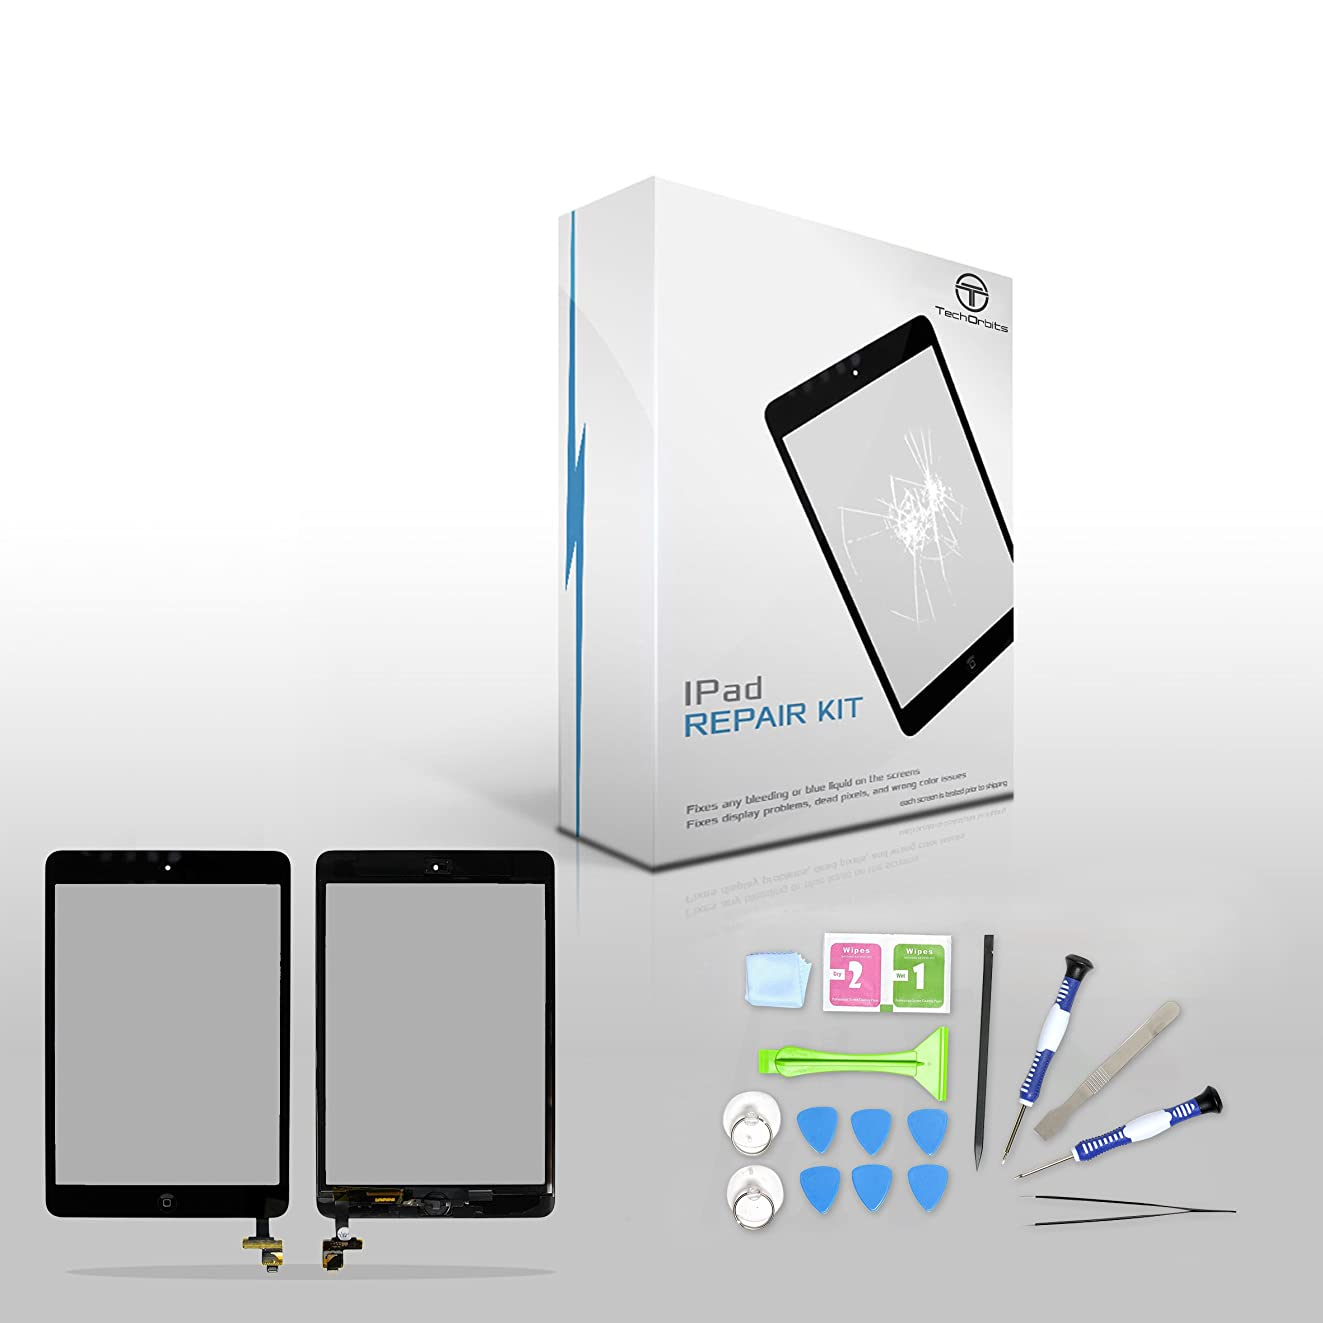 """TechOrbits IPAD Mini Touch Screen Digitizer Replacement 7.9"""" Mini & Mini 2 Retina Display with IC Chip & Home button A1432 A1454 A1455 A1489 A1490 A1491 (AT&T/T-Mobile/Sprint/Verizon) Black Repair Kit"""